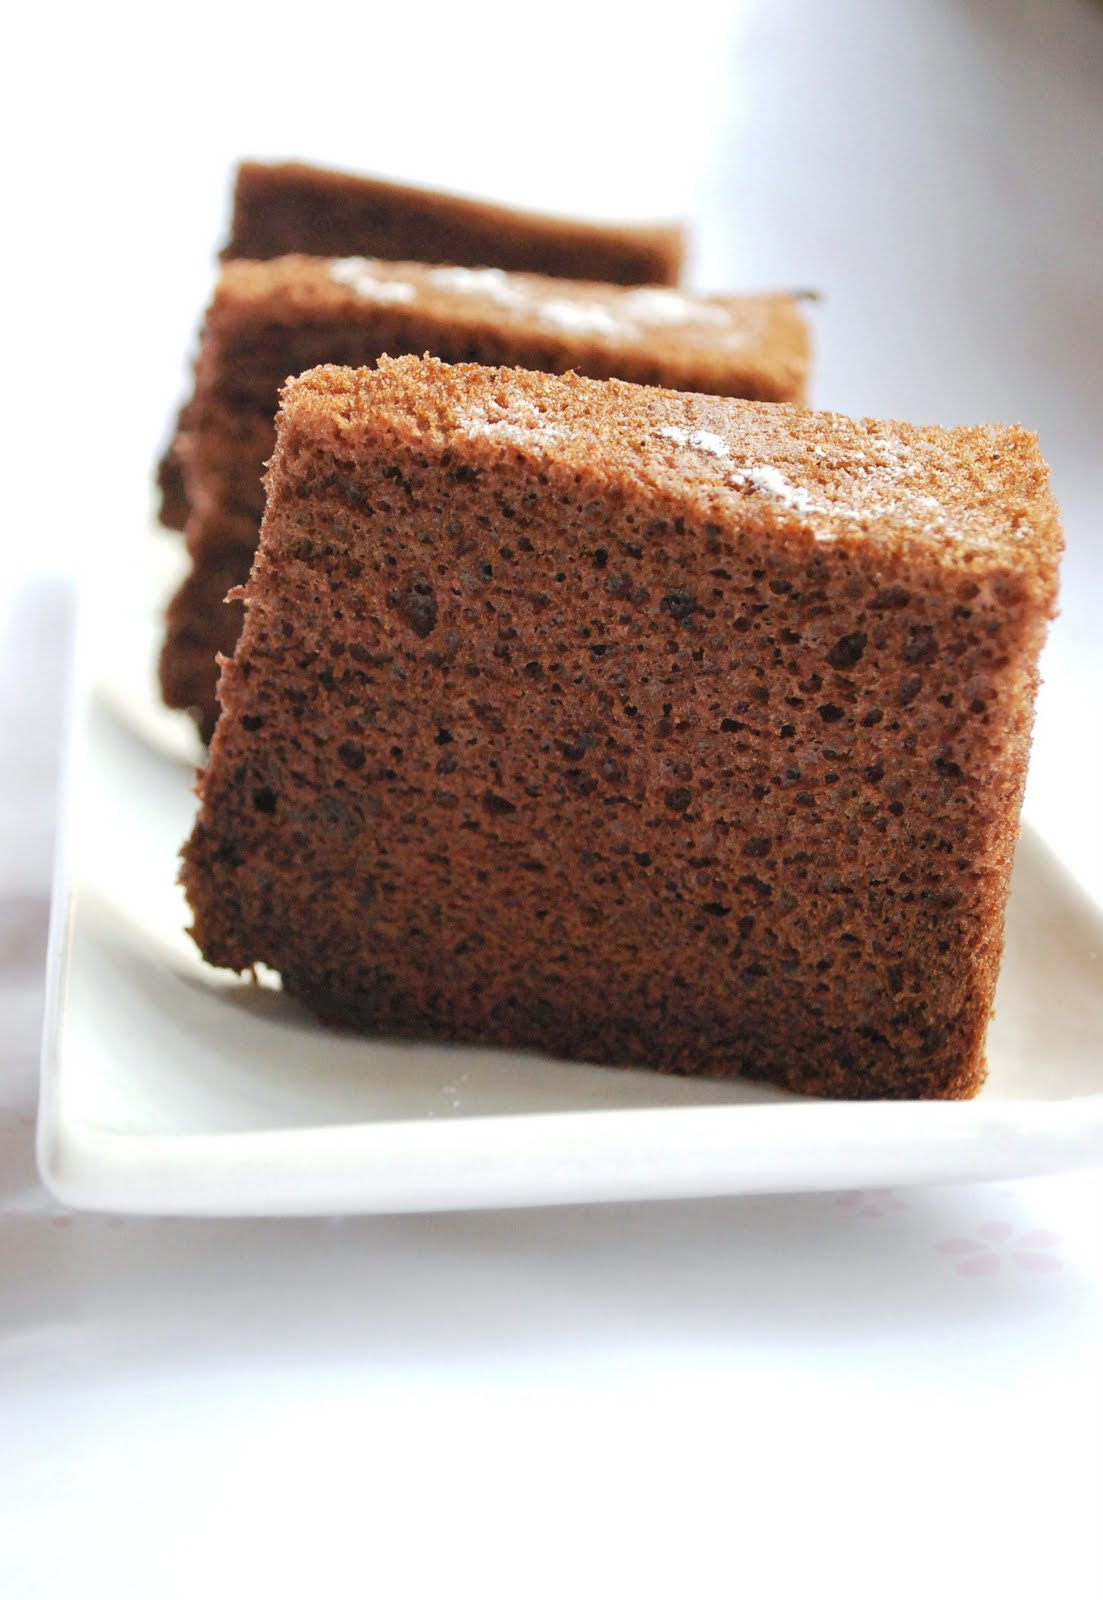 Sweets and Loves: Chocolate Chiffon Cake - My Favourite ...